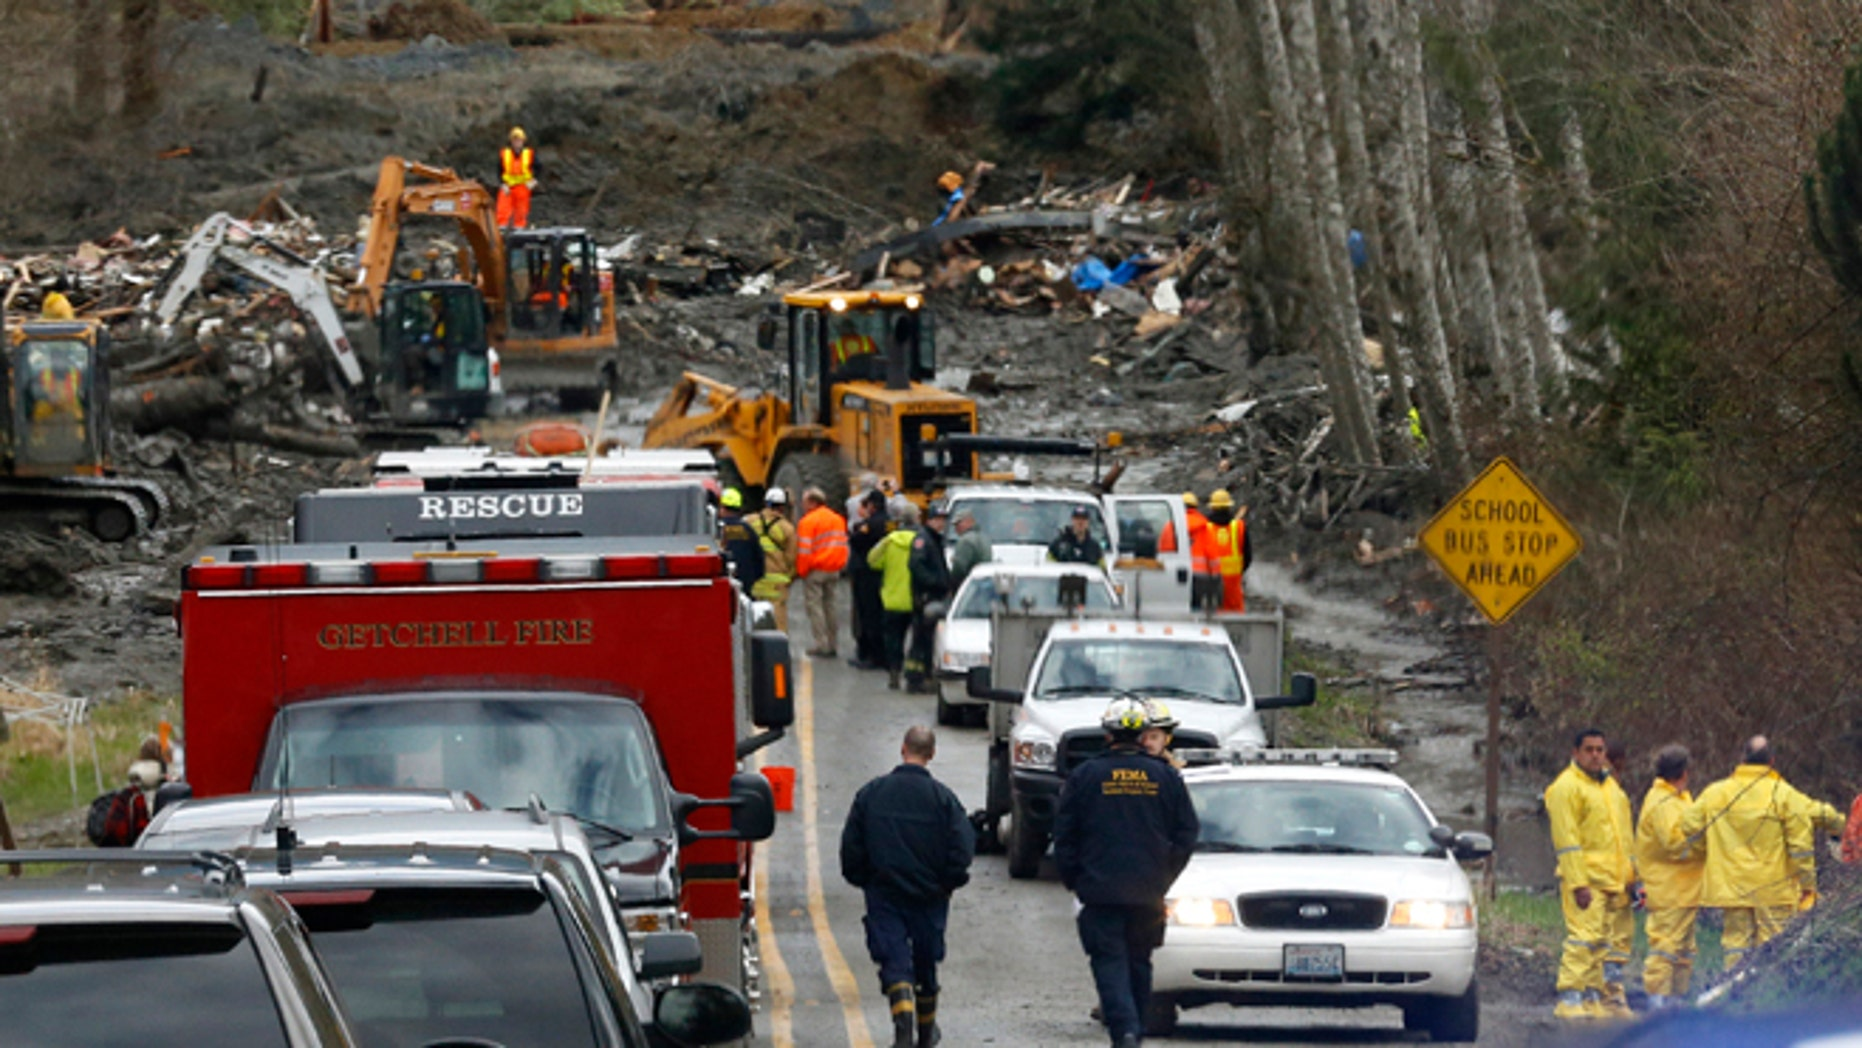 Mar 26, 2014: Workers search the debris that flowed across Highway 530 in the mudslide near Oso, Washington as rescue efforts continue. (Reuters)